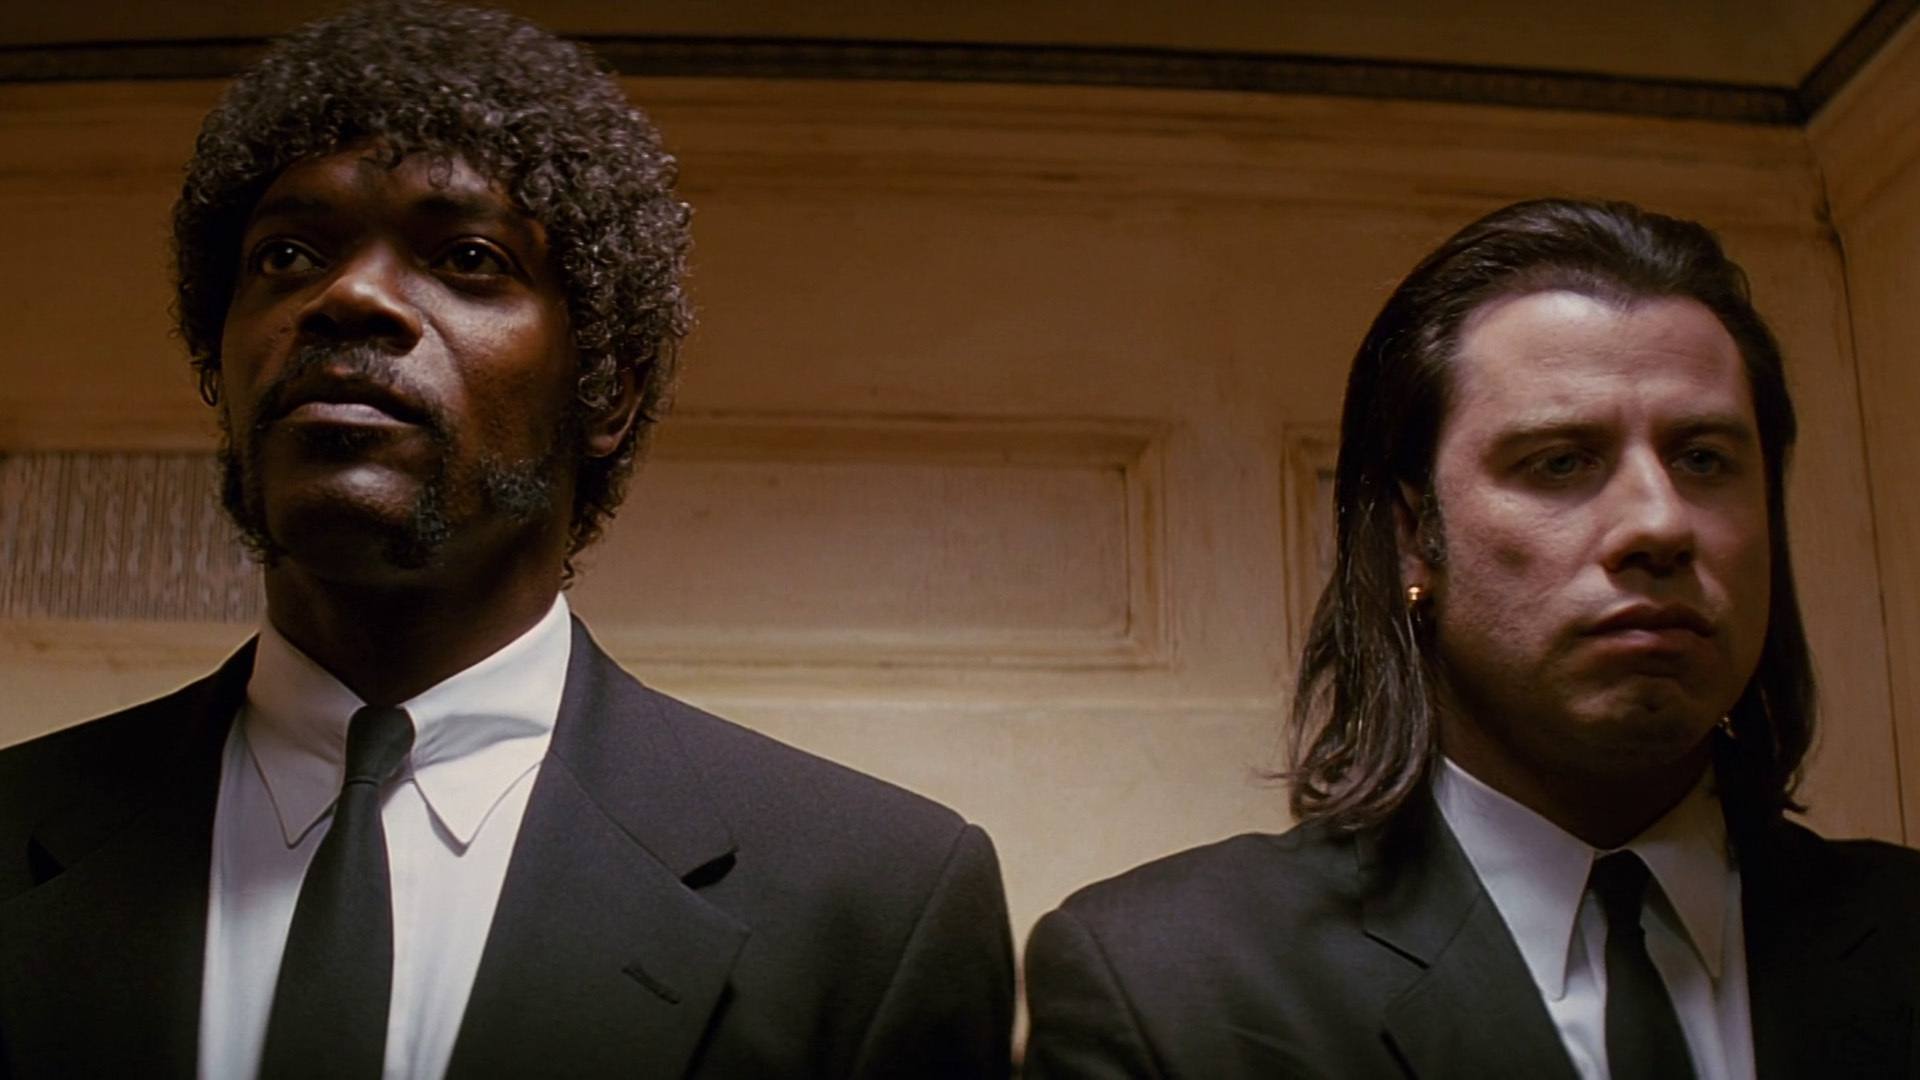 Historia oculta Pulp Fiction